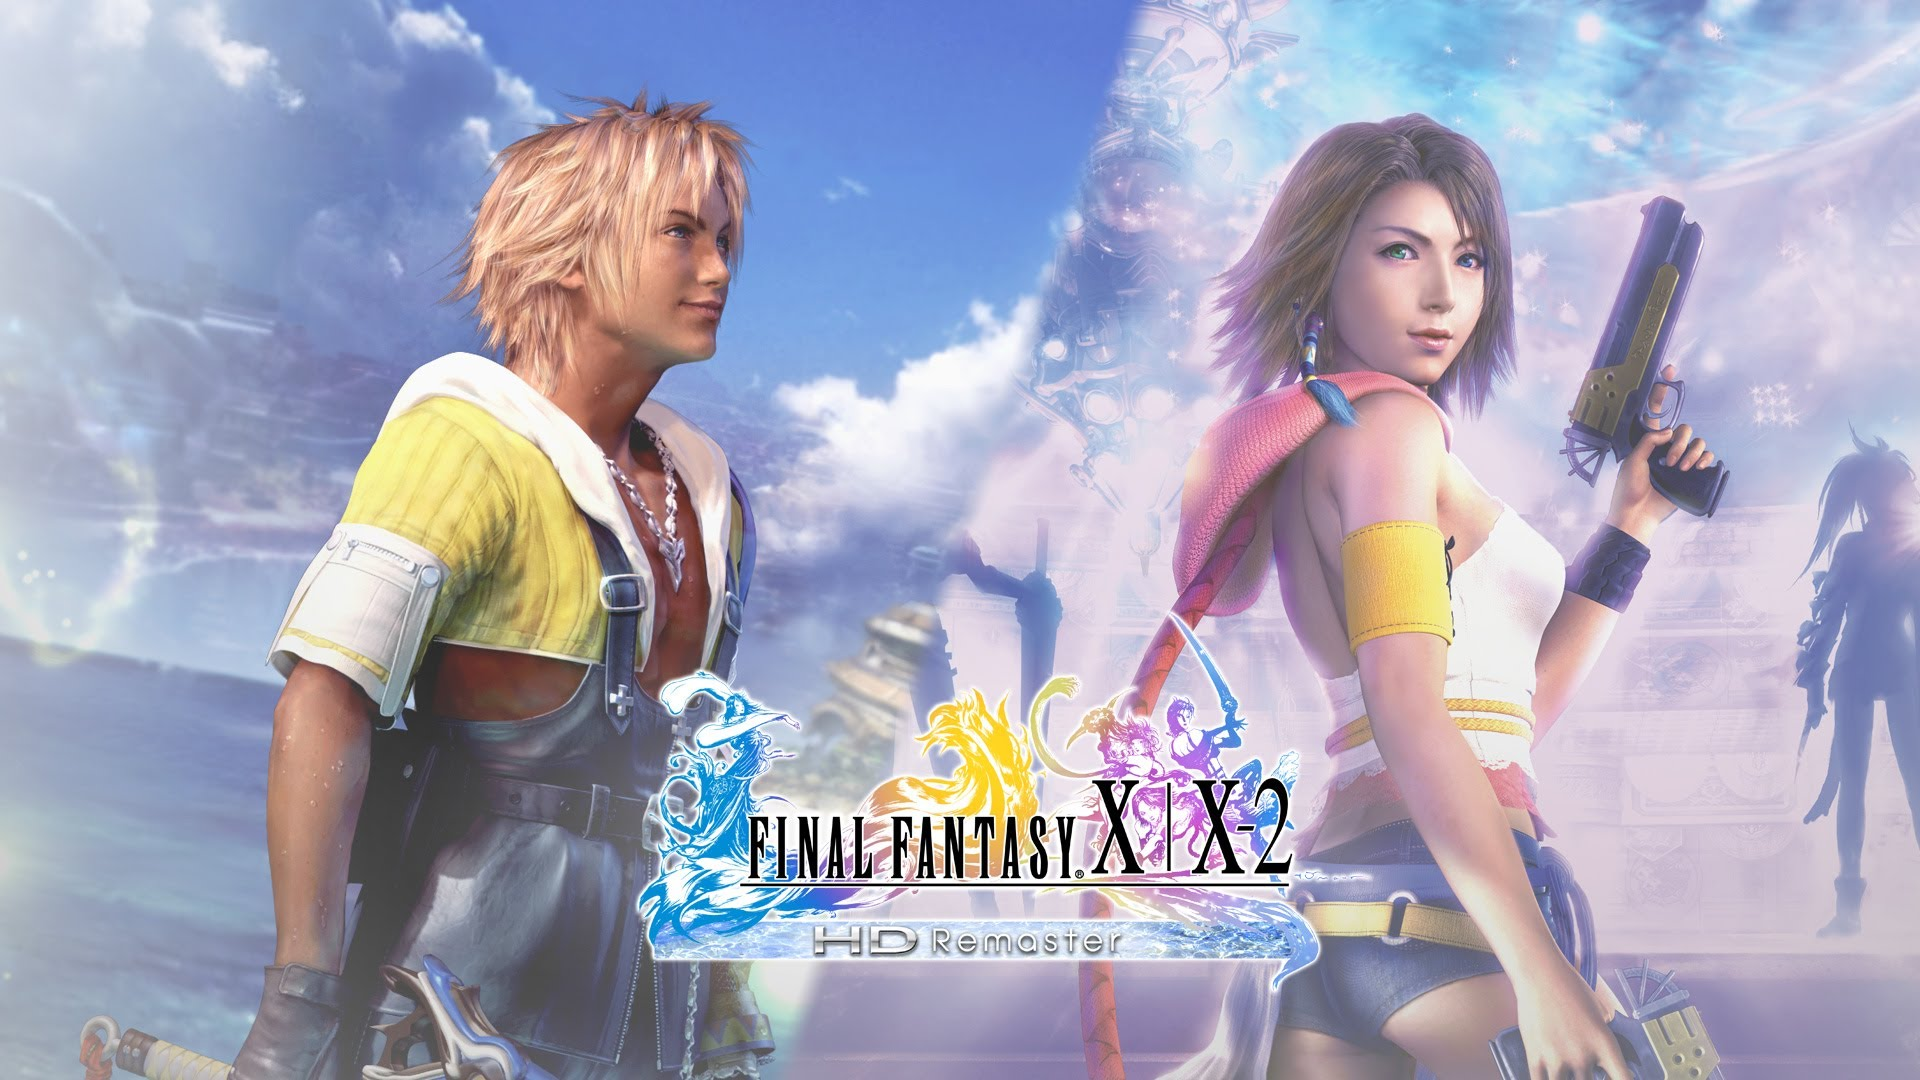 X X 2 Final Fantasy X X 2 Hd Remaster Details Launchbox Games Database